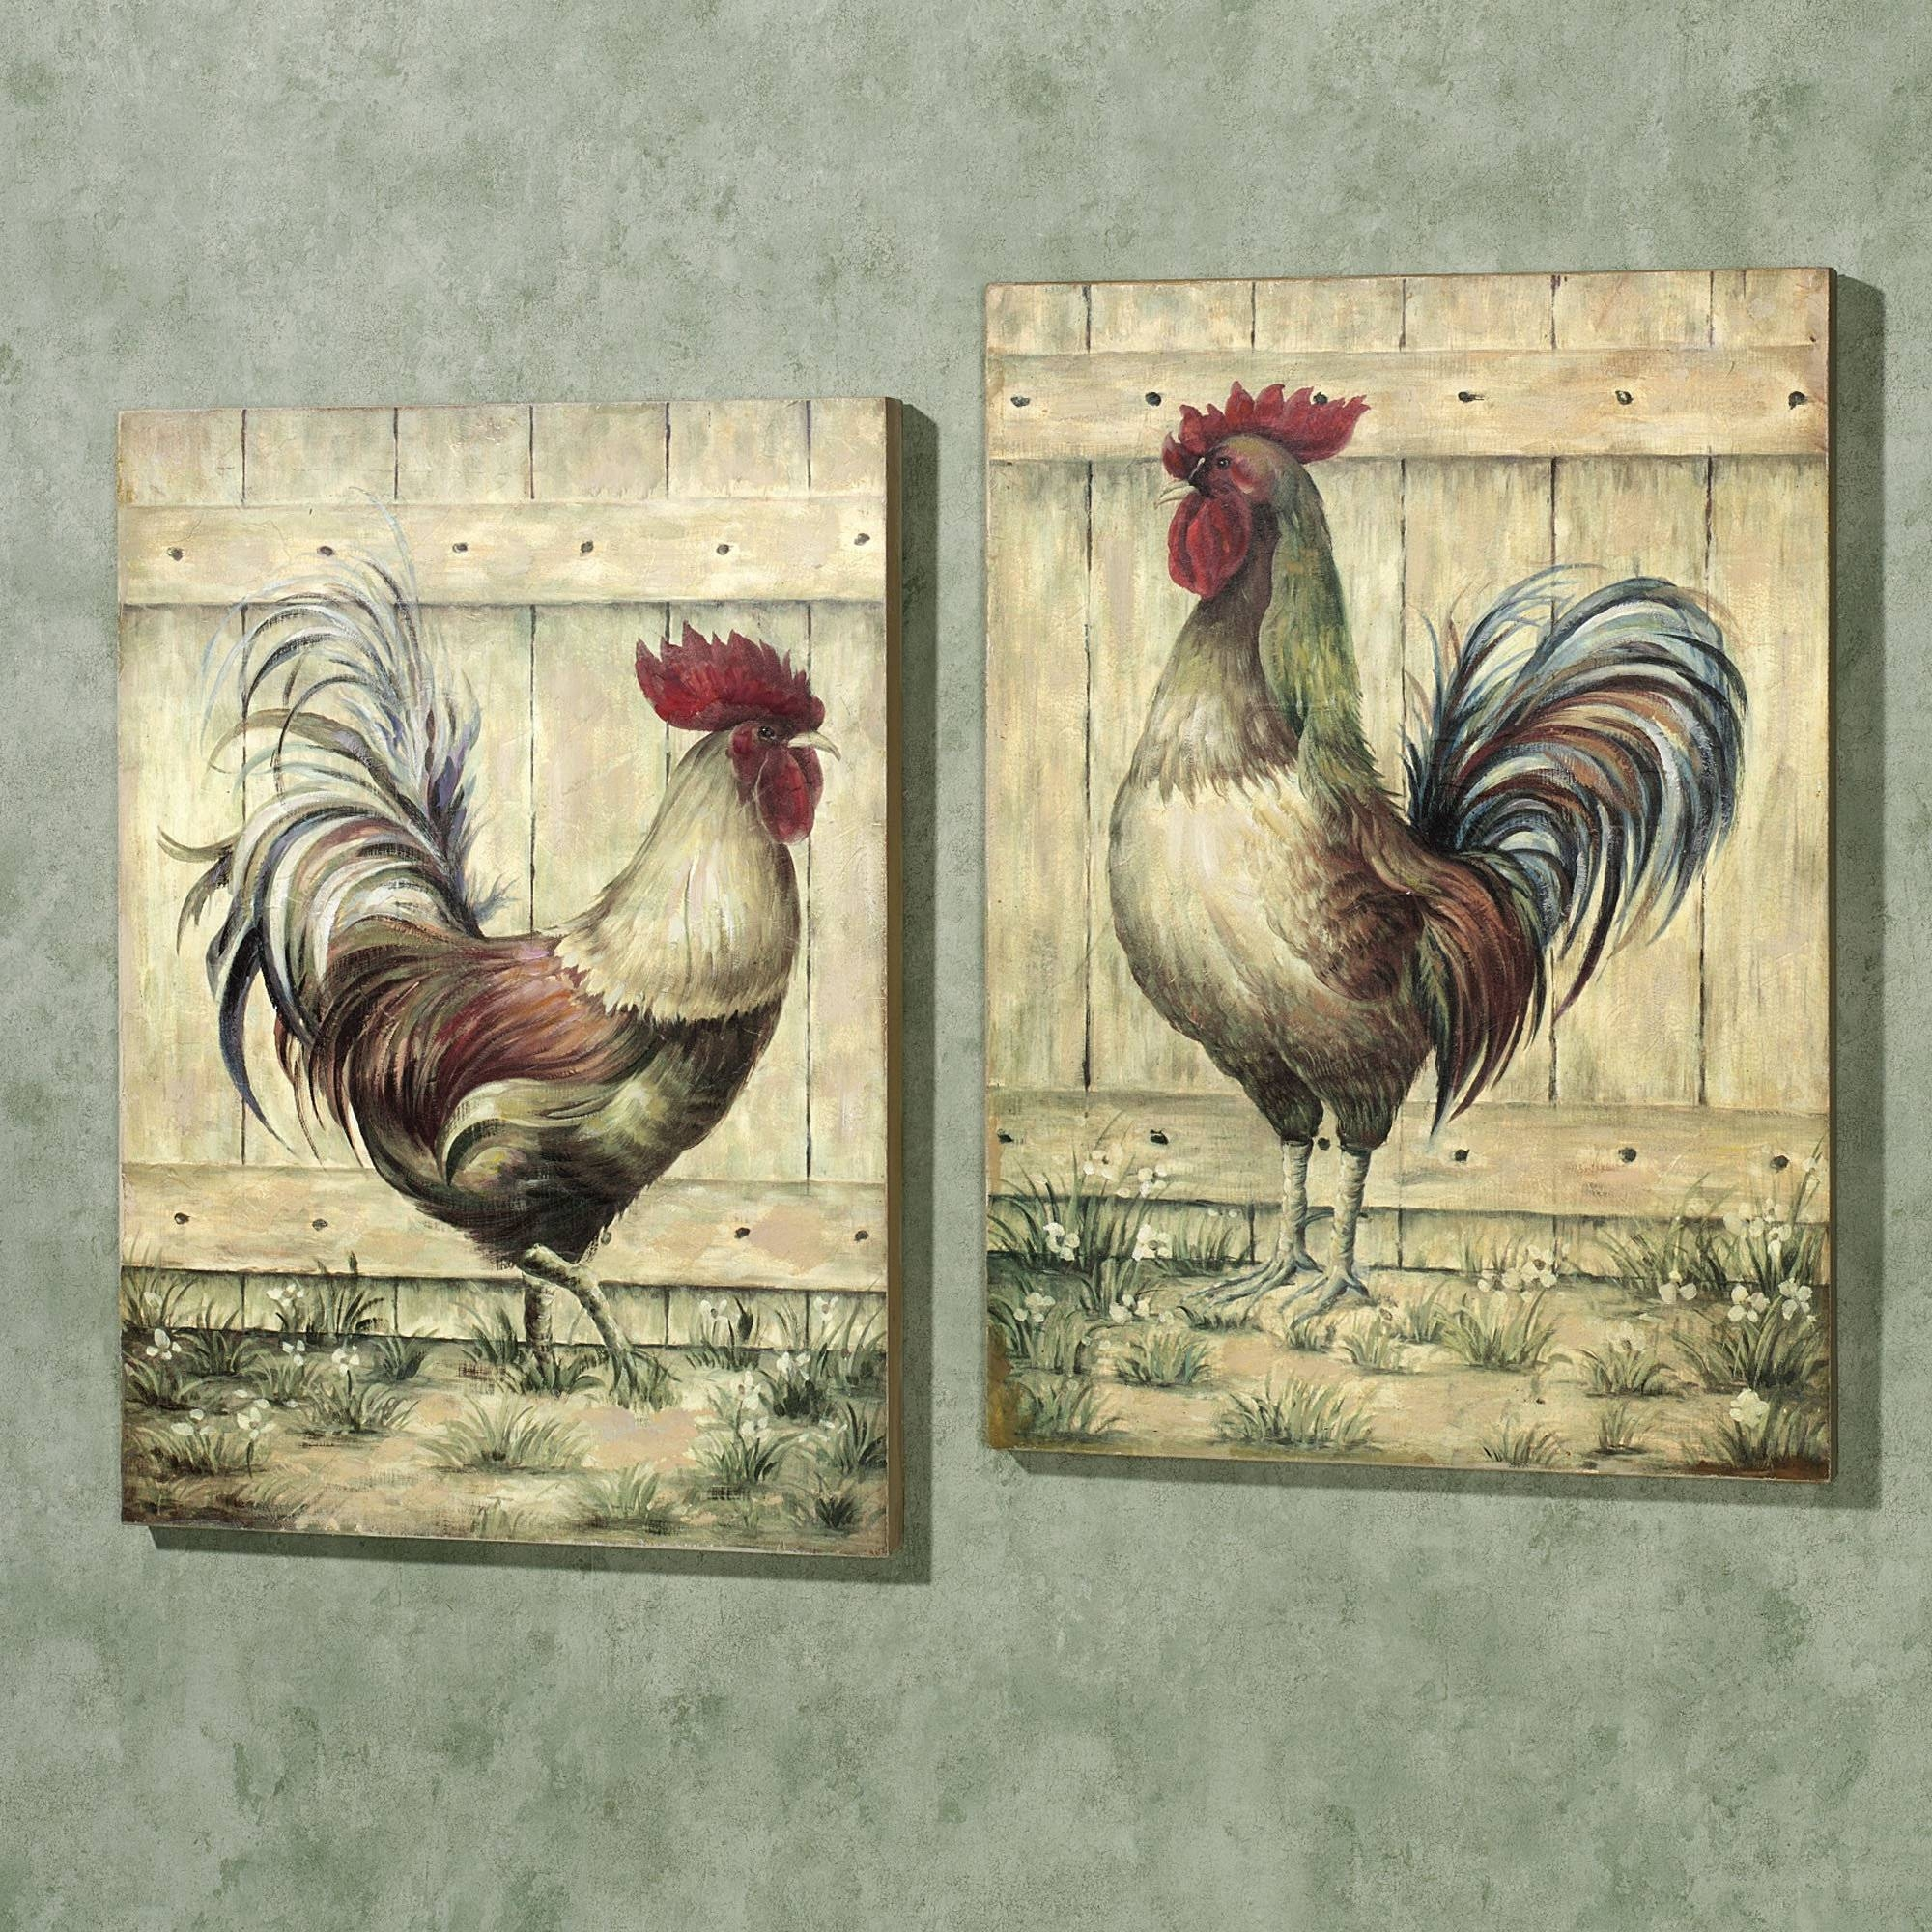 Chic Country Wall Art Wallpaper So French Country Find Wall Ideas Intended For Most Current French Country Wall Art Prints (View 5 of 20)